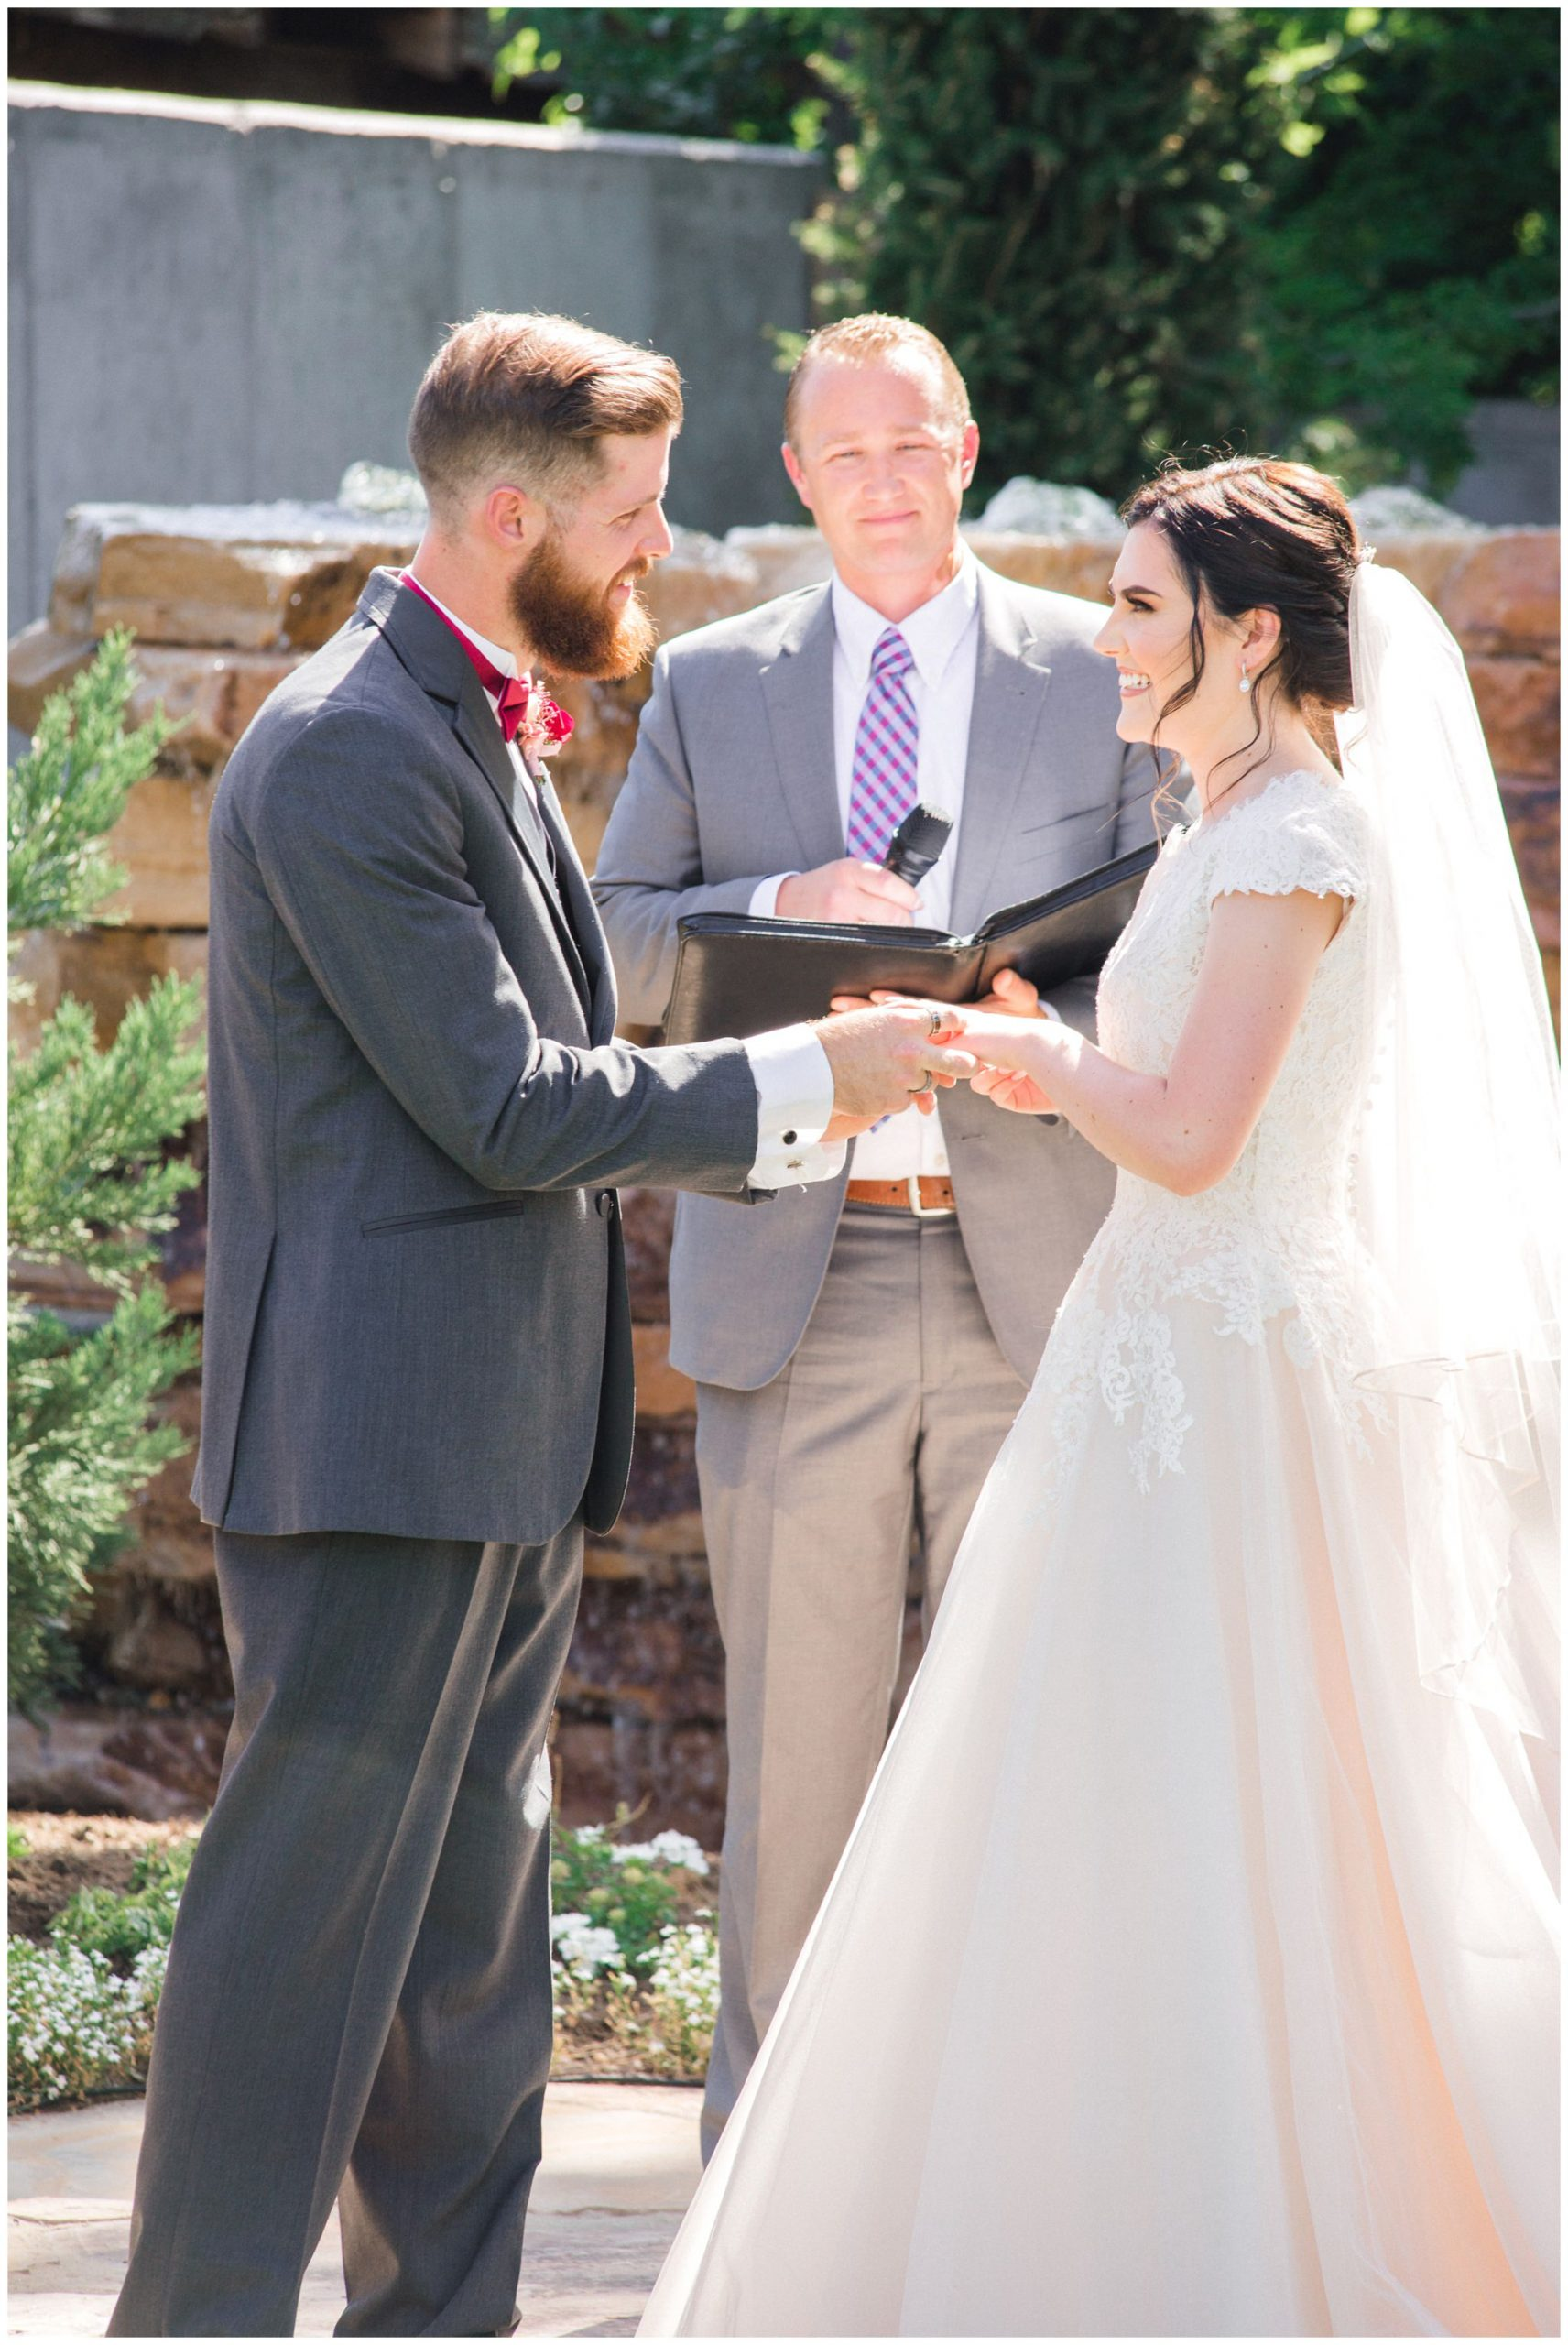 Bride and groom exchanging vows in Lindon utah at the Wild oak venue